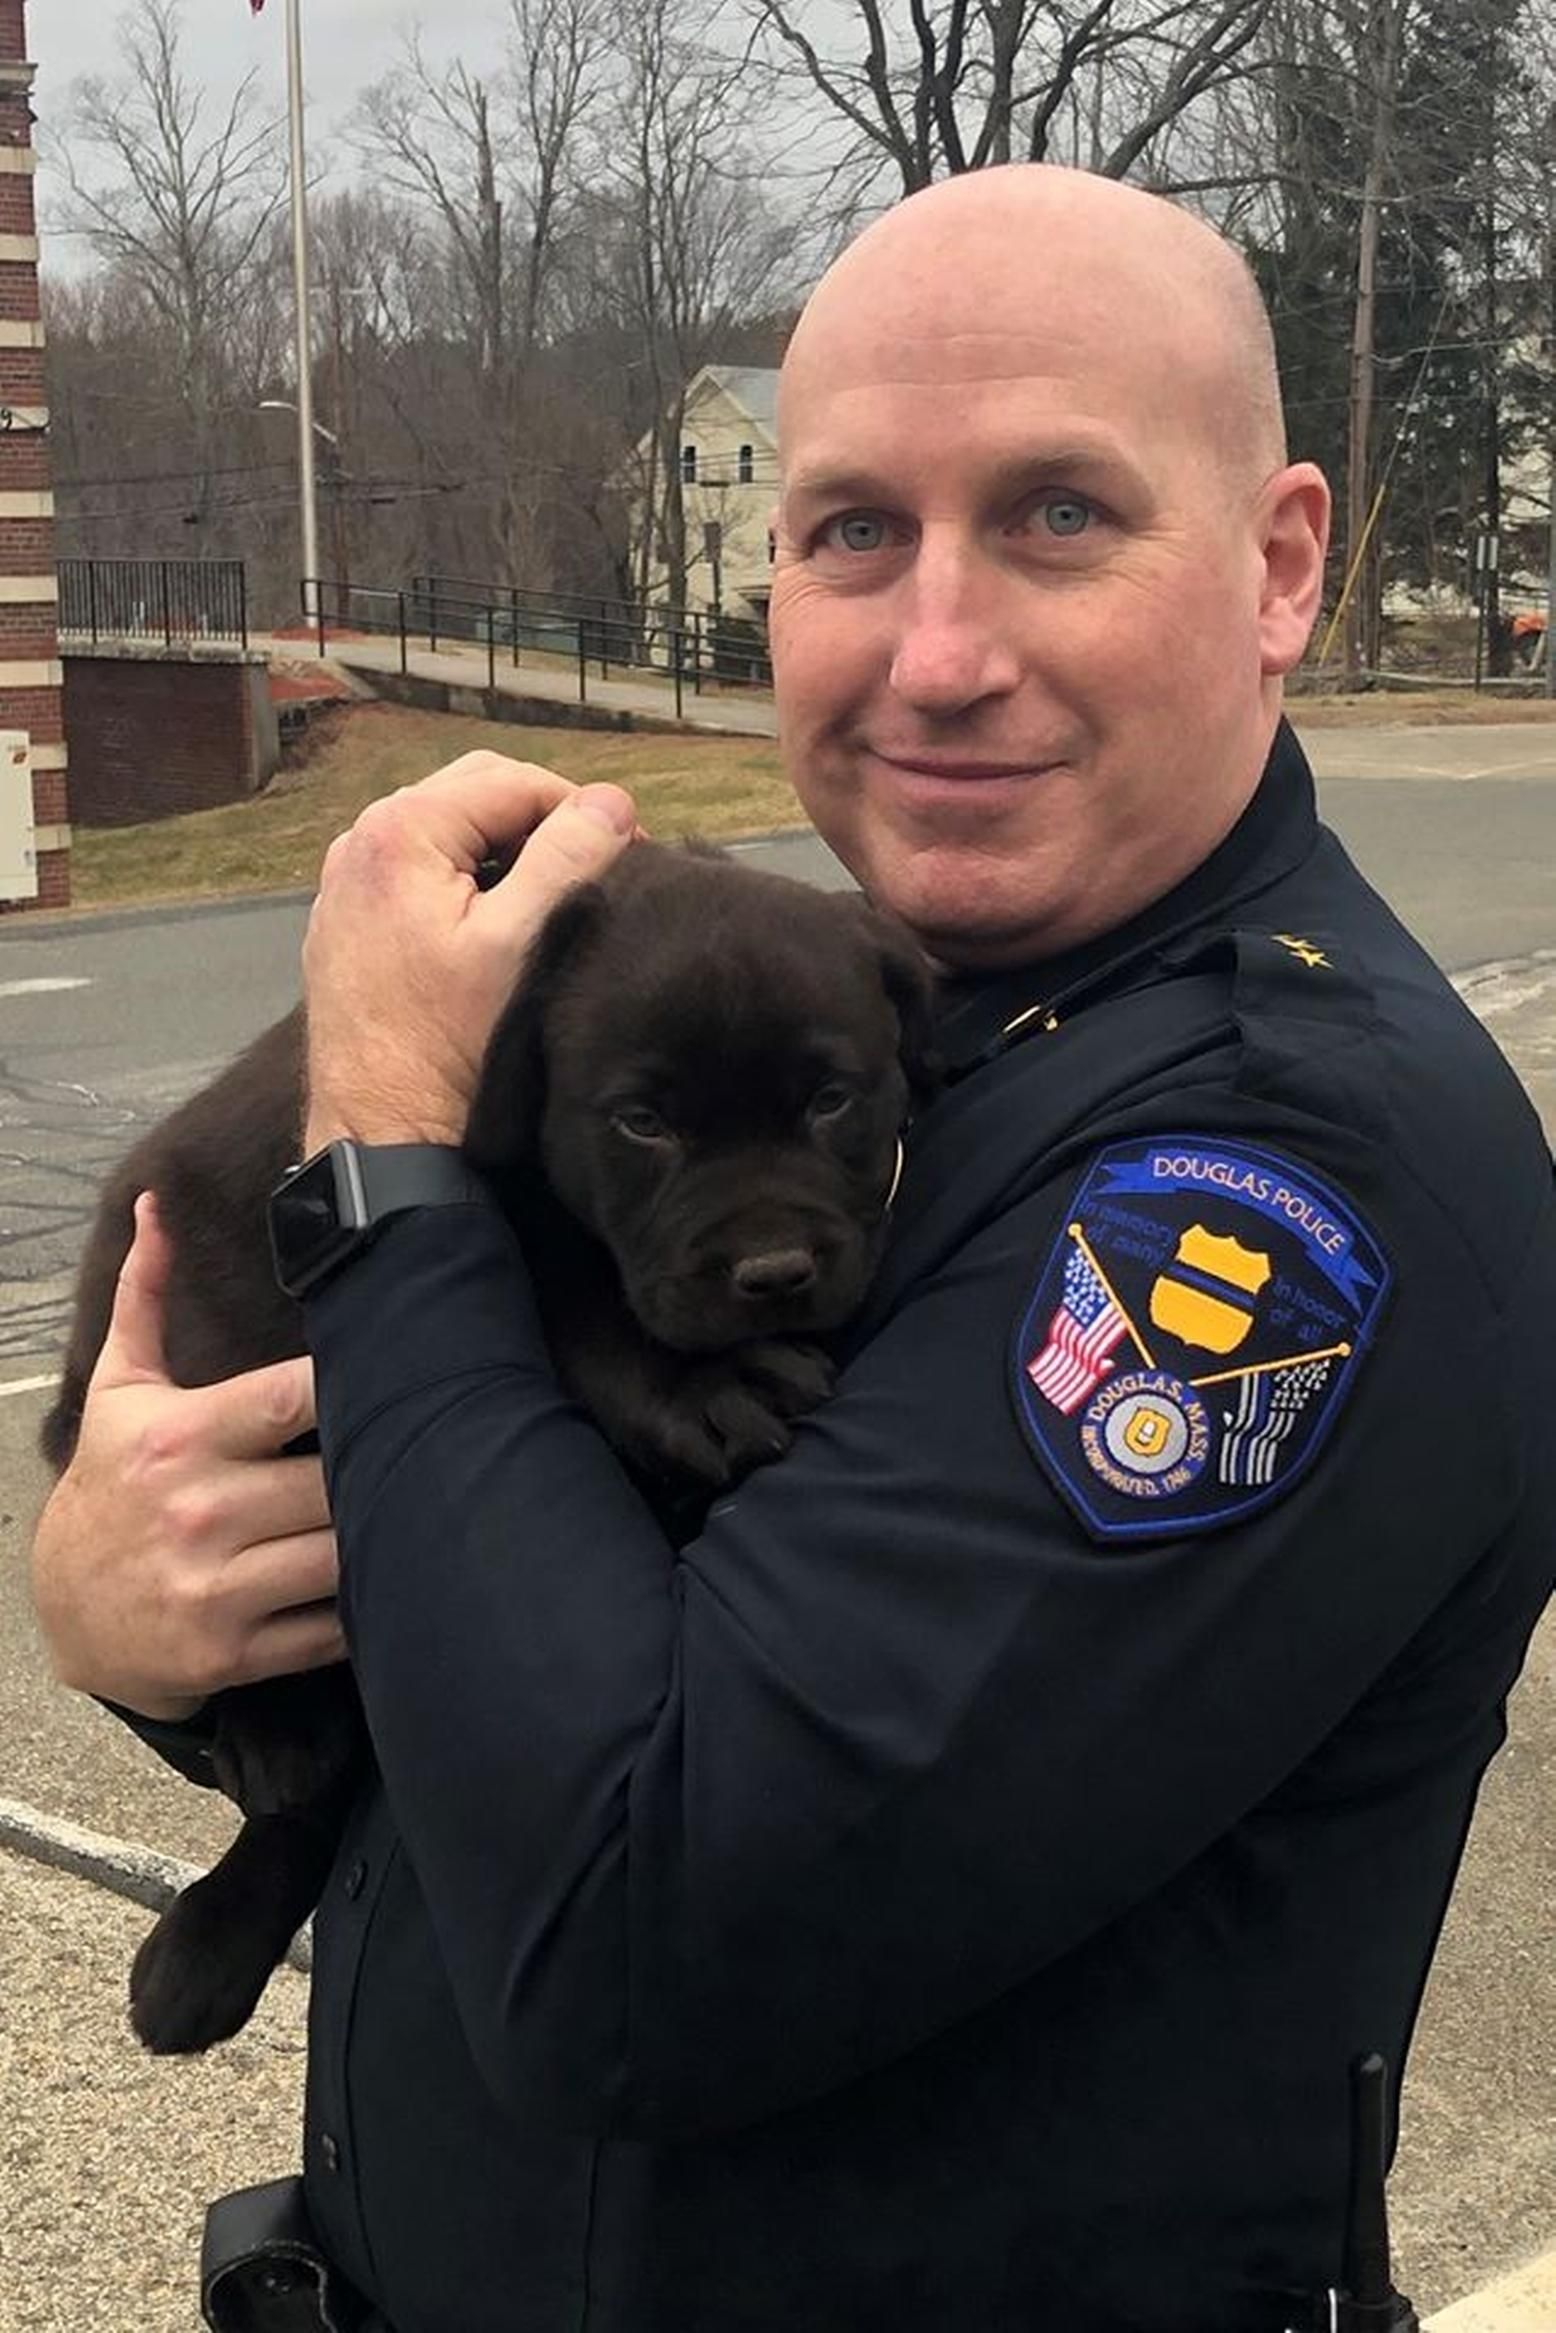 Cutest Cop Finn Joins Douglas Pd As Comfort Dog Labrador